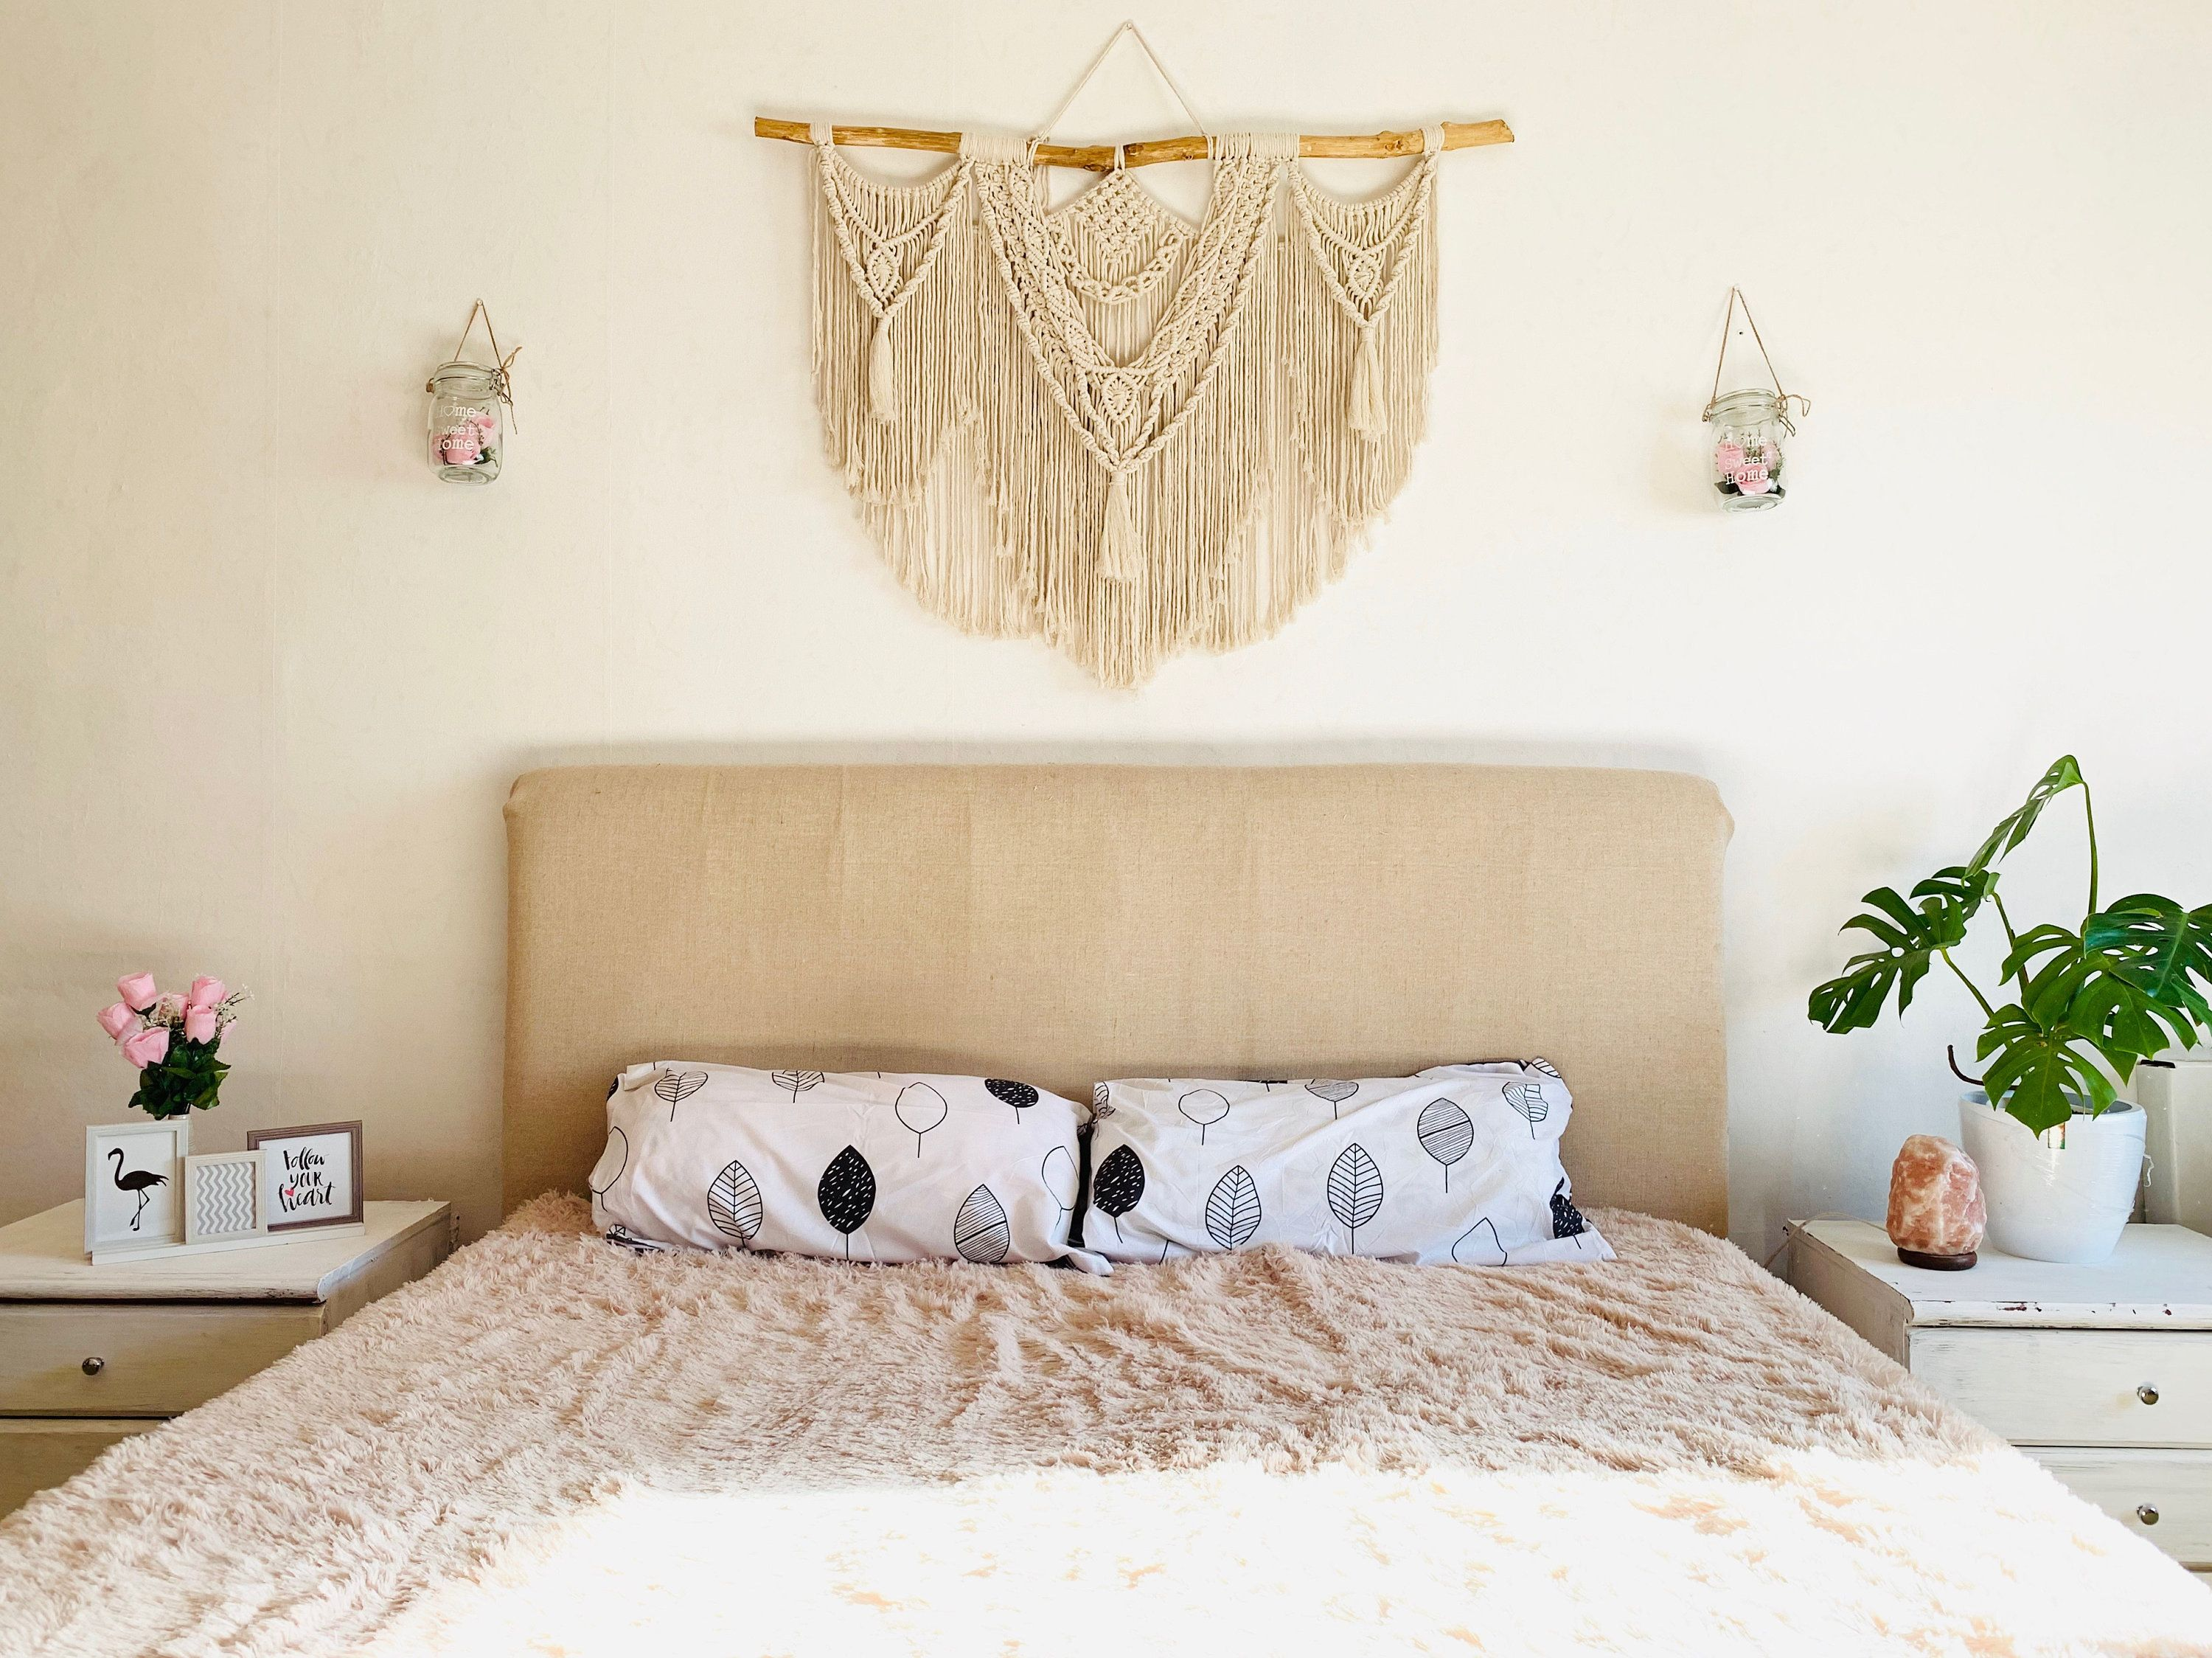 Macrame Wall Hanging Above Bed Decor Queen Tapestry King Size